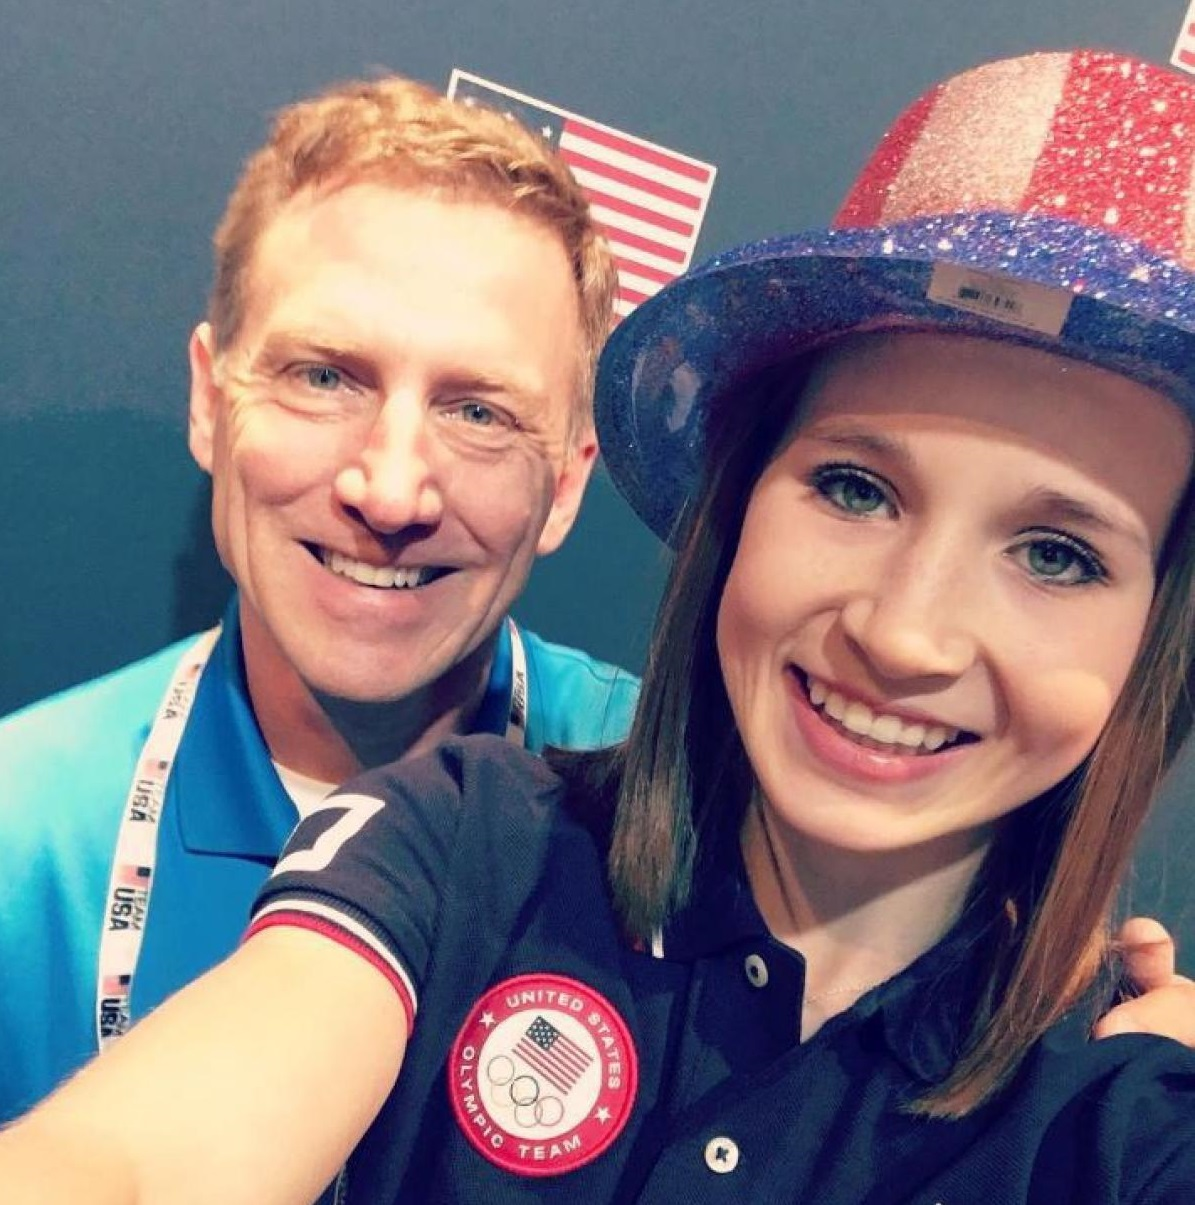 Madison Kocian Family Tree, Father, Mother, Age